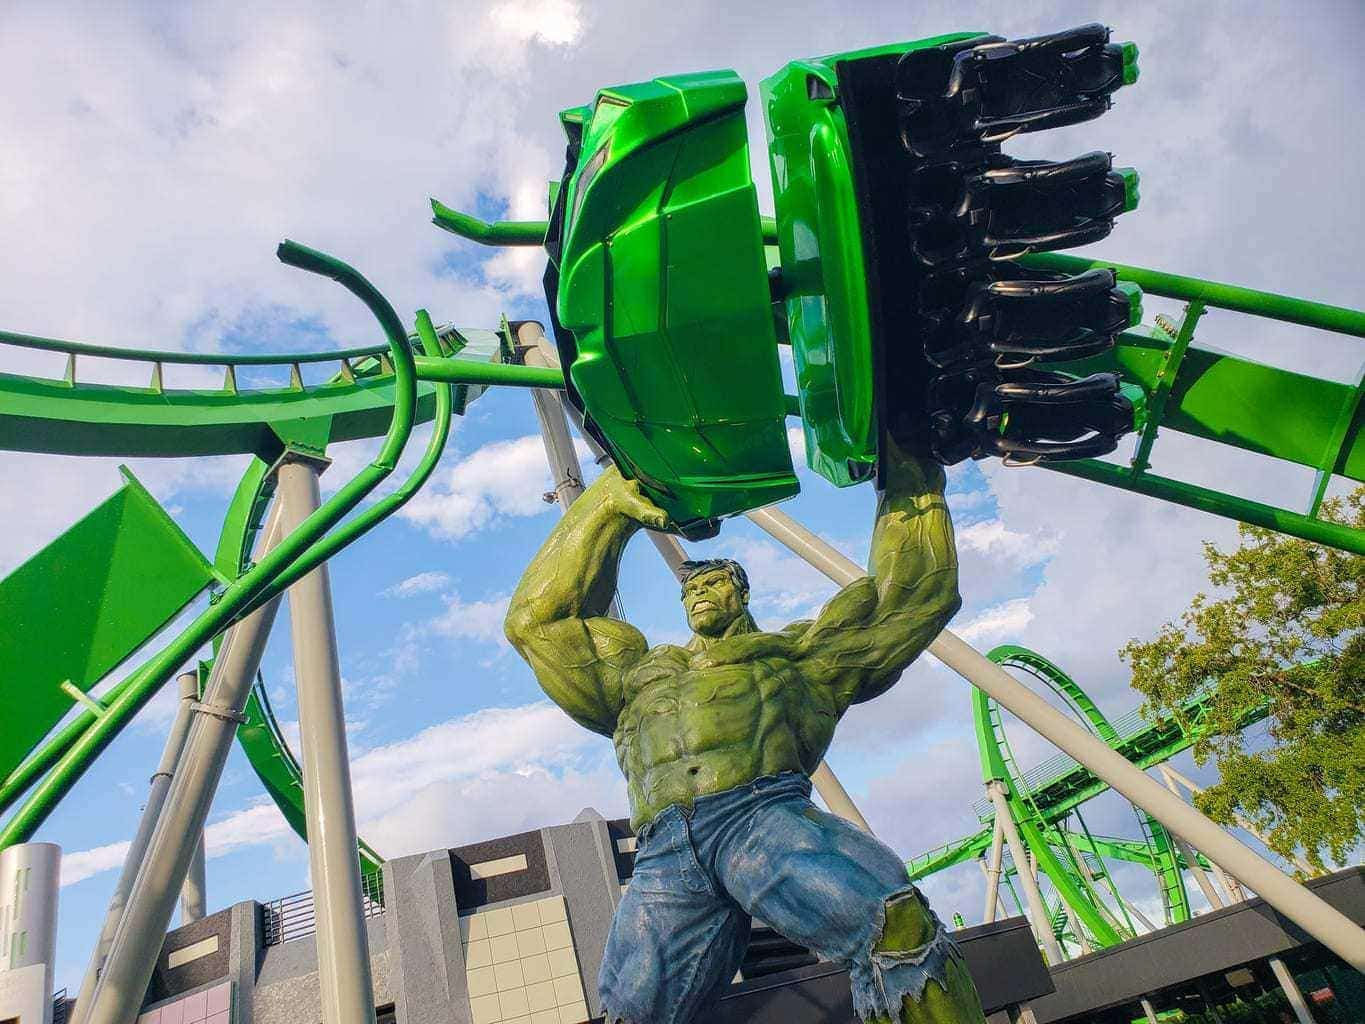 The Incredible Hulk Roller Coaster